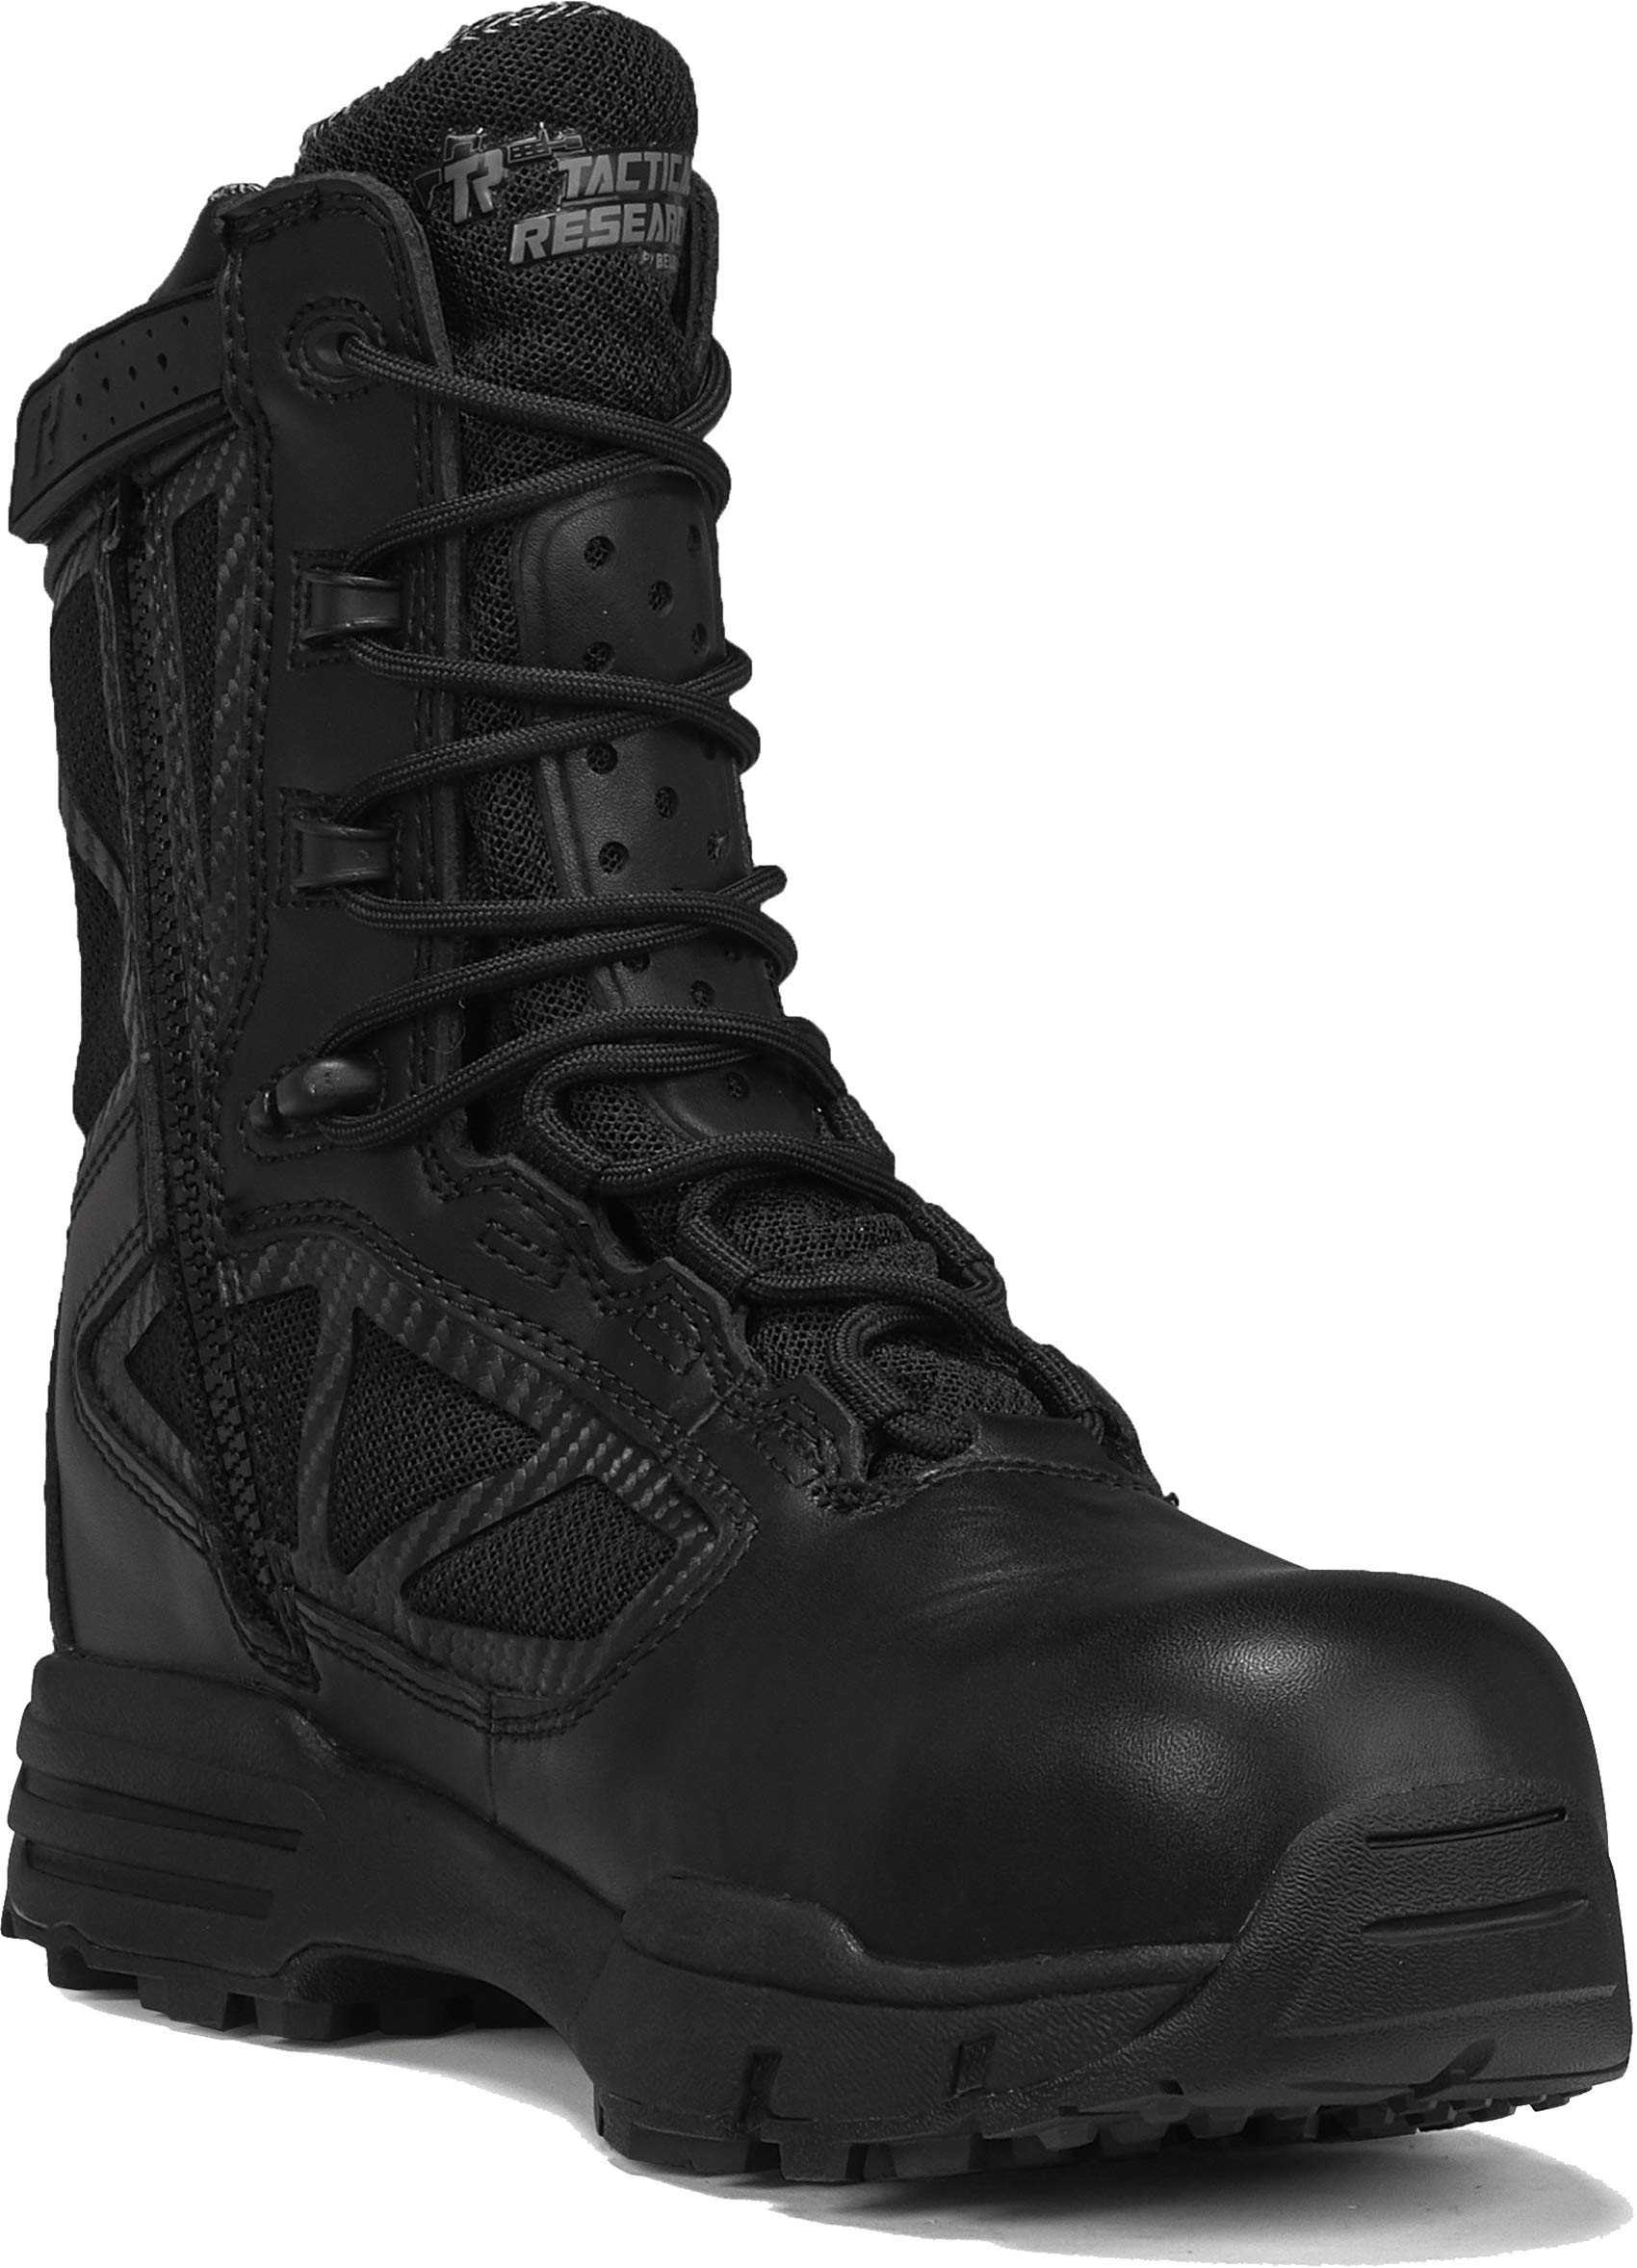 "TACTICAL RESEARCH TR Men's TR Chrome TR998Z WP CT 8"" Waterproof Side-Zip Composite Toe Boot"